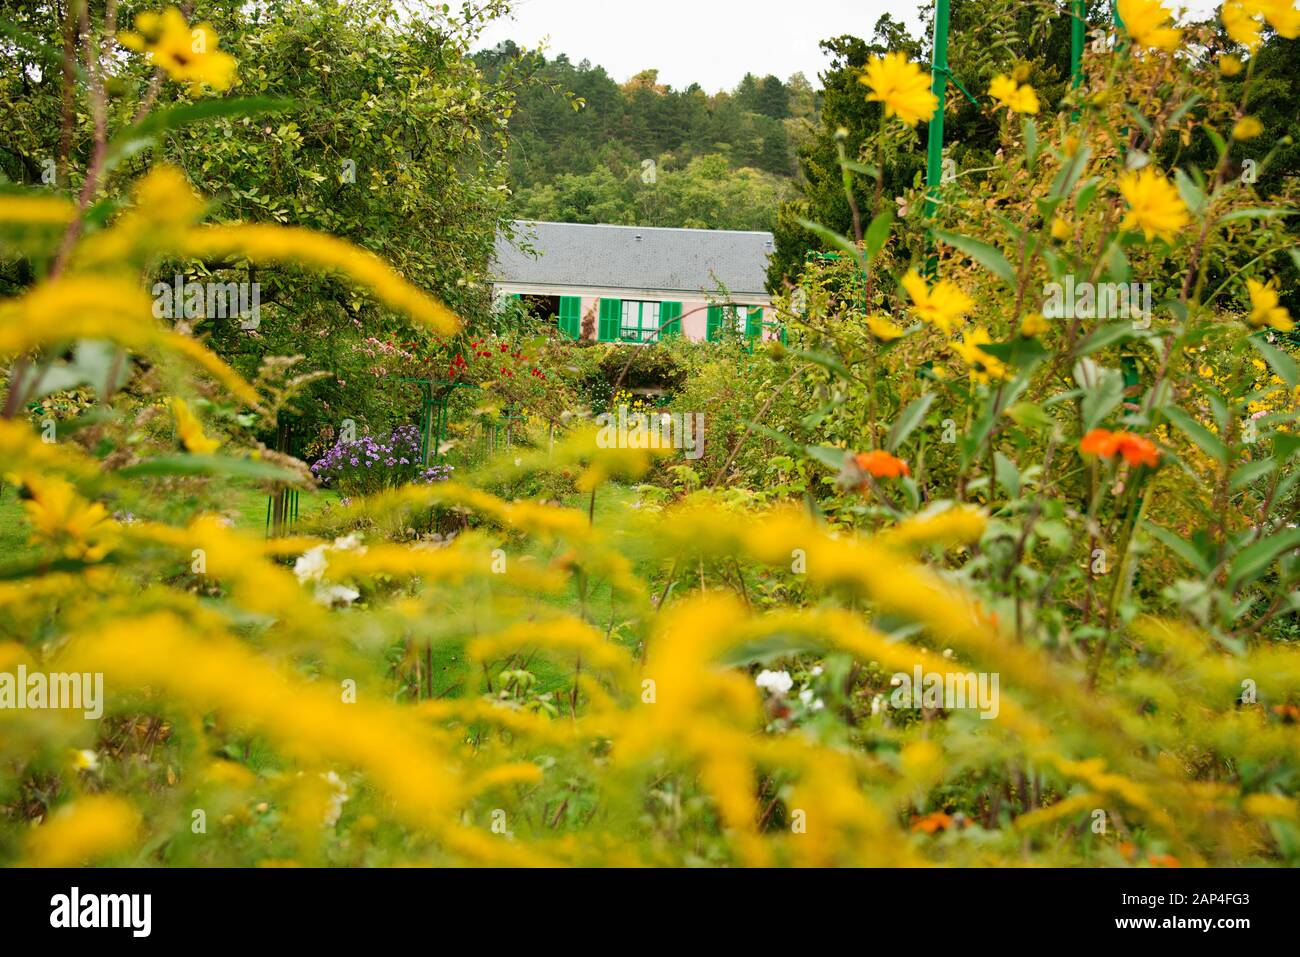 Fiori Gialli Normandia.Giverney Immagini Giverney Fotos Stock Alamy